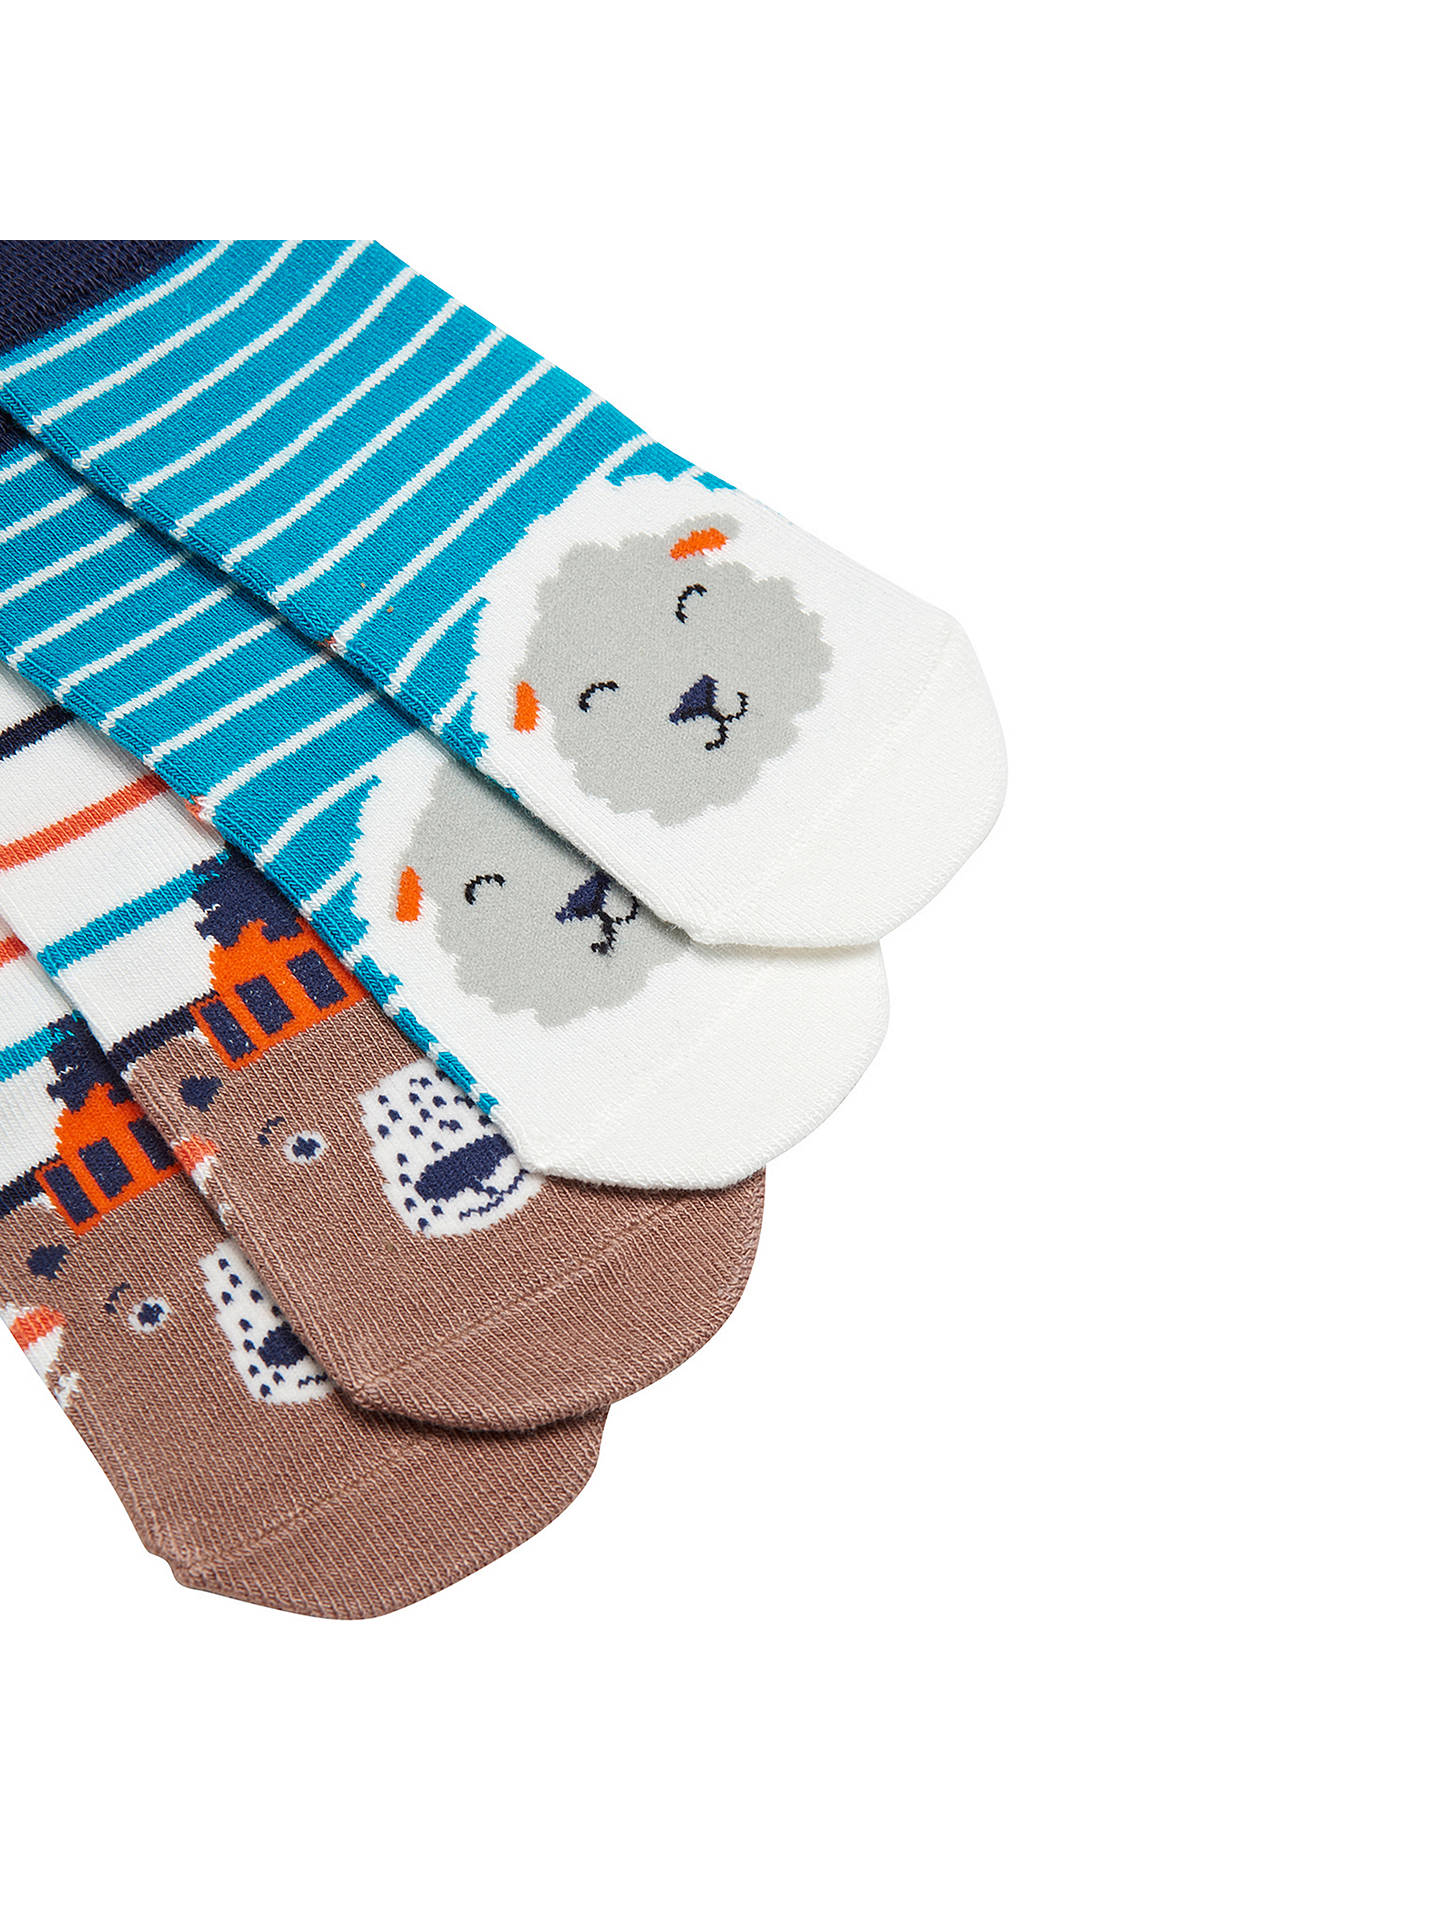 Buy Baby Joule Neat Feet Sheep and Bear Socks, Pack of 2, Multi, 1-2 years Online at johnlewis.com